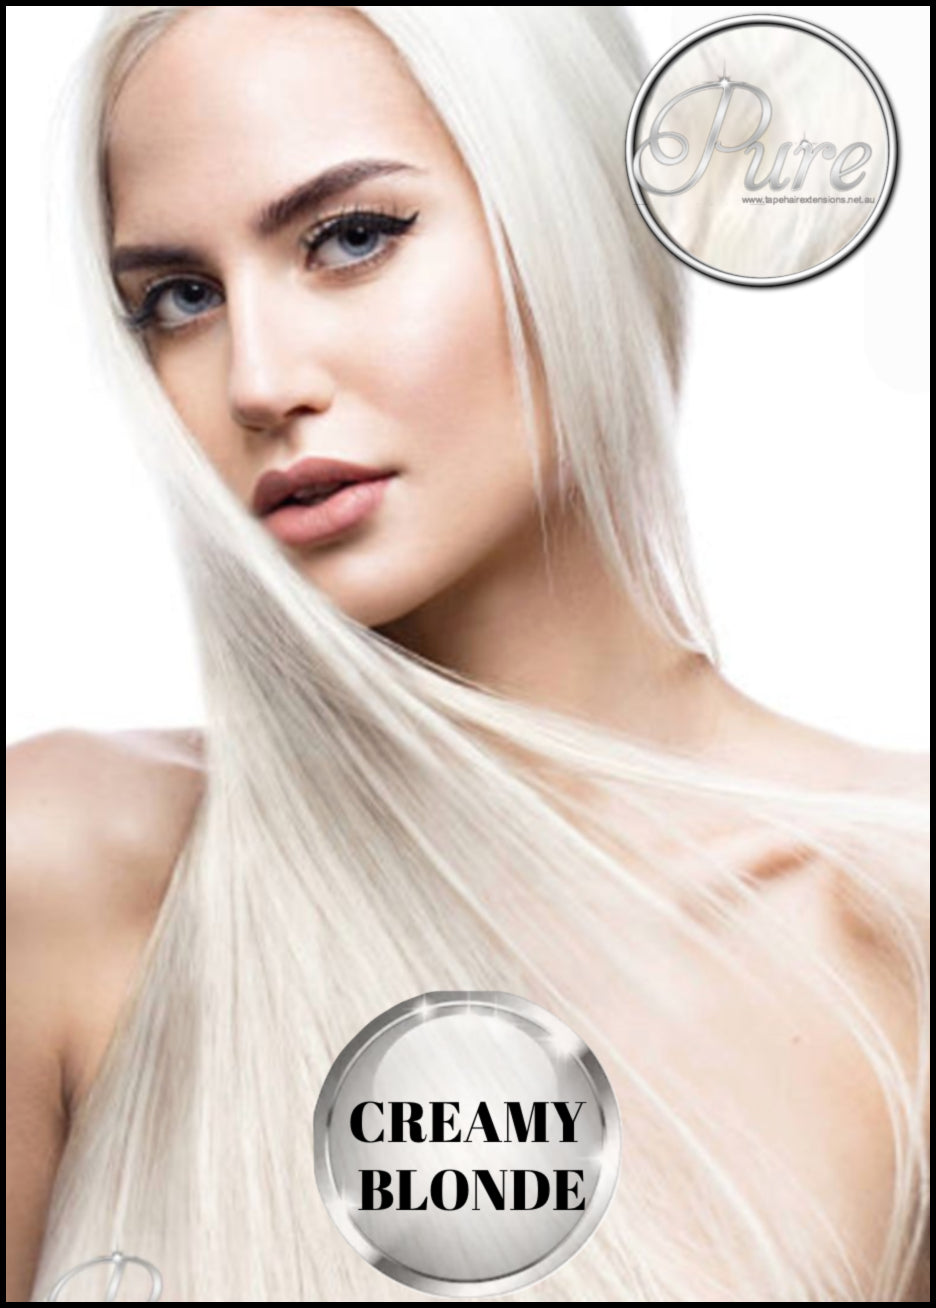 Creamy blonde hair extensions, most beautiful creamy blonde hair extensions made from 100% remy human Russian grade hair.